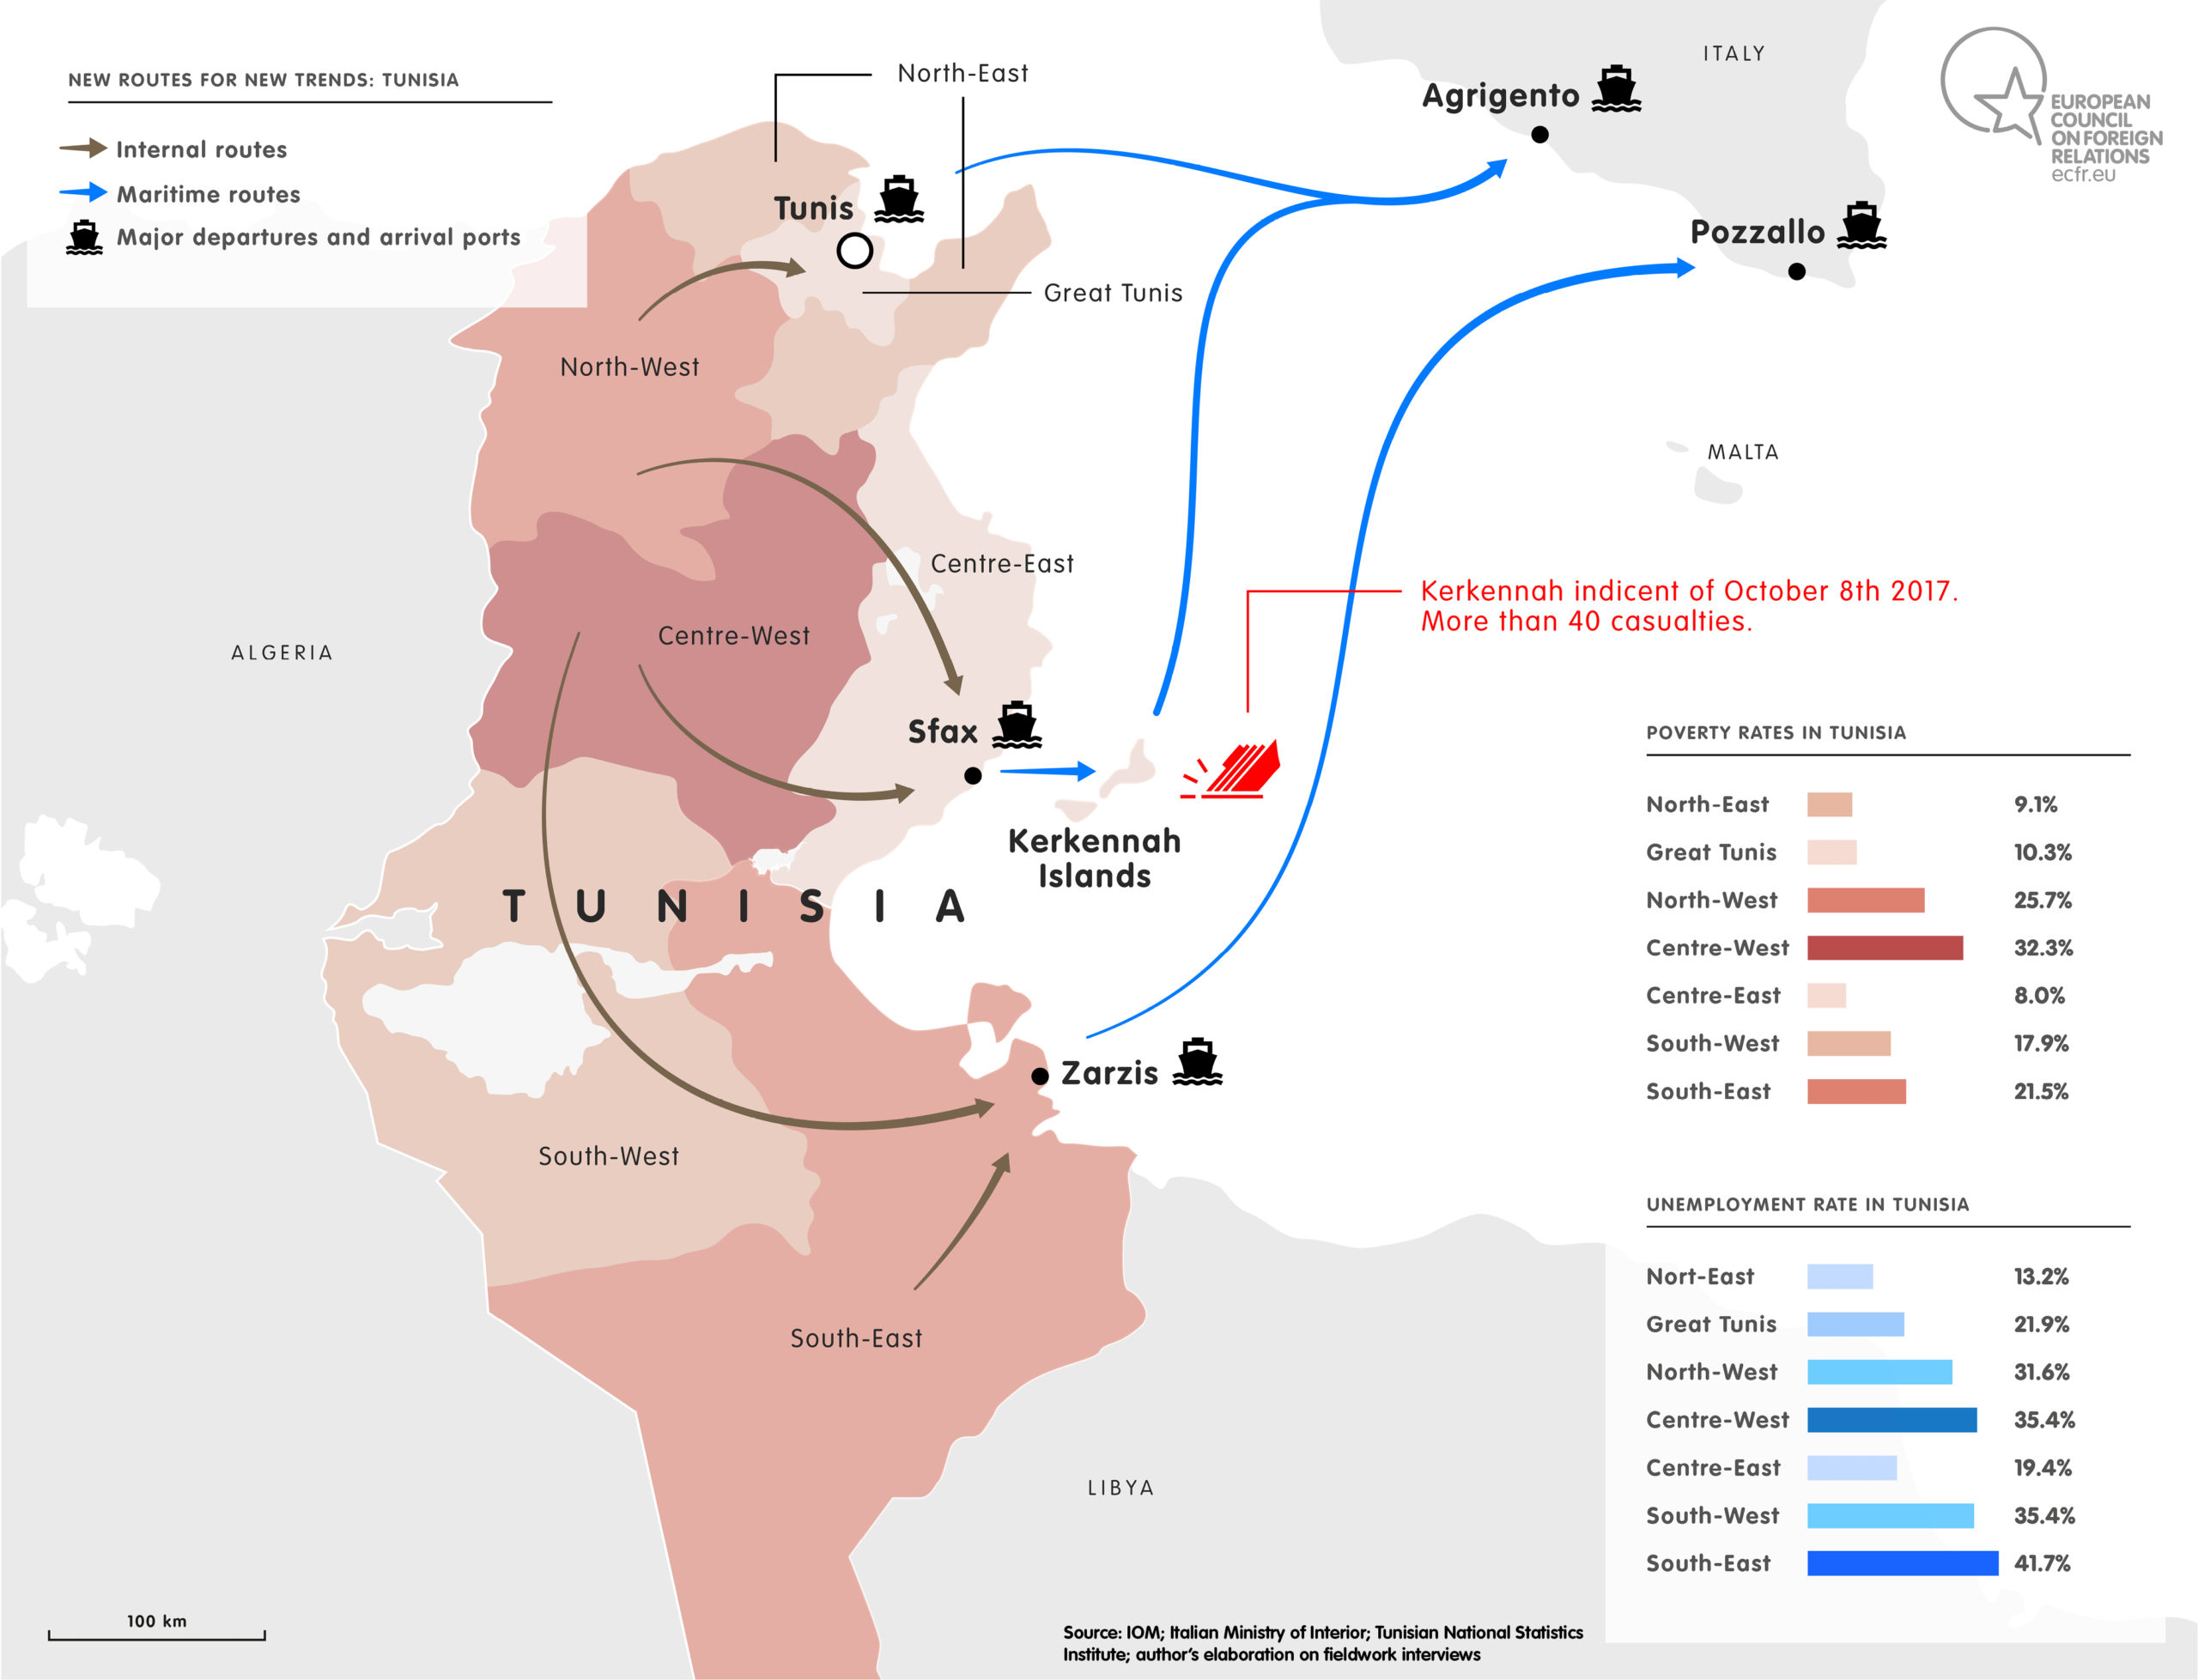 Tunisia's internal migration routes map